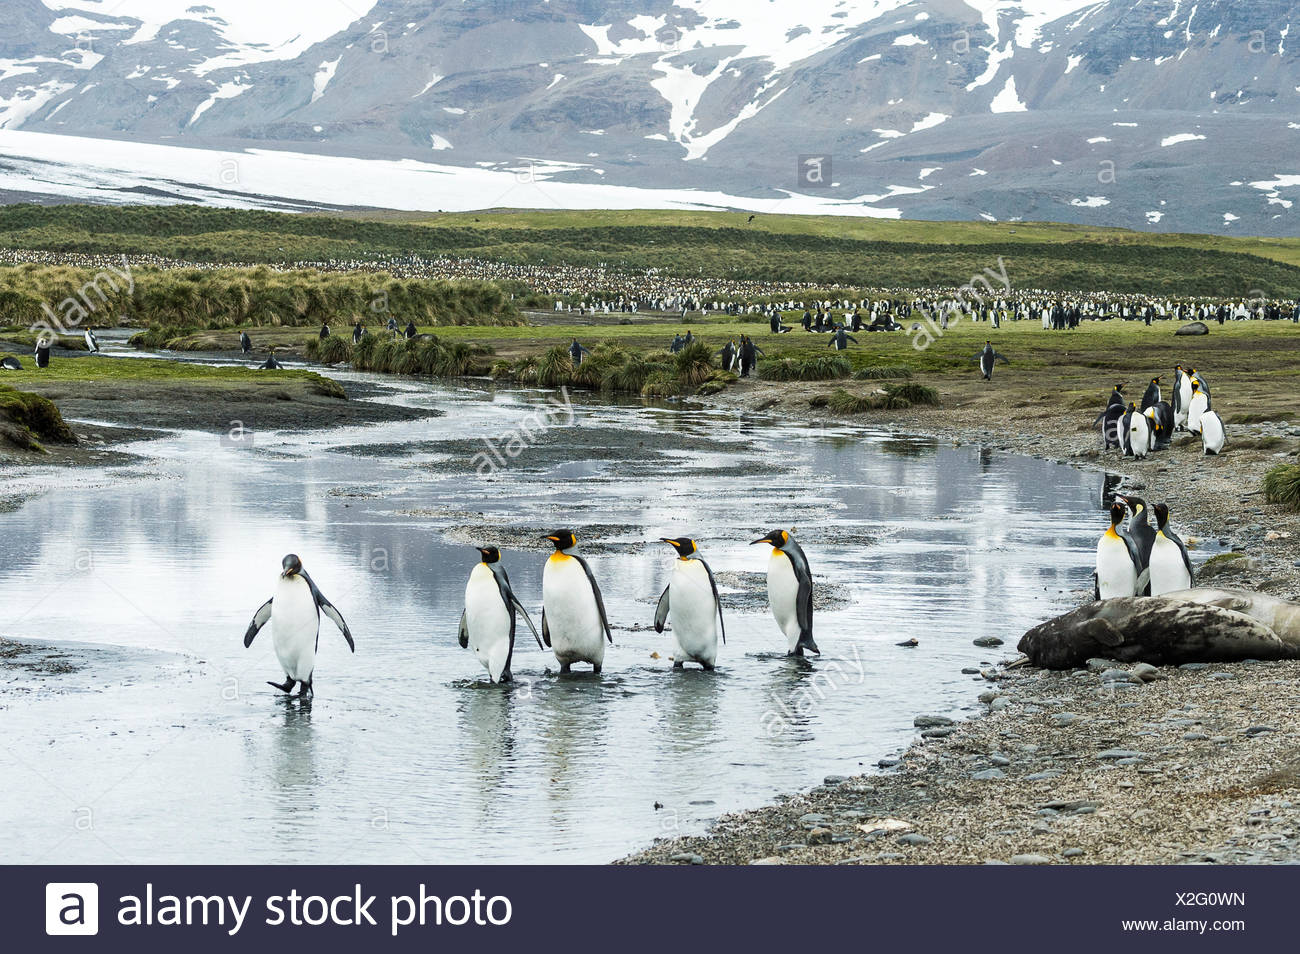 King penguins (Aptenodytes patagonicus) wading in shallow water; South Georgia, South Georgia and the South Sandwich Islands, United Kingdom - Stock Image